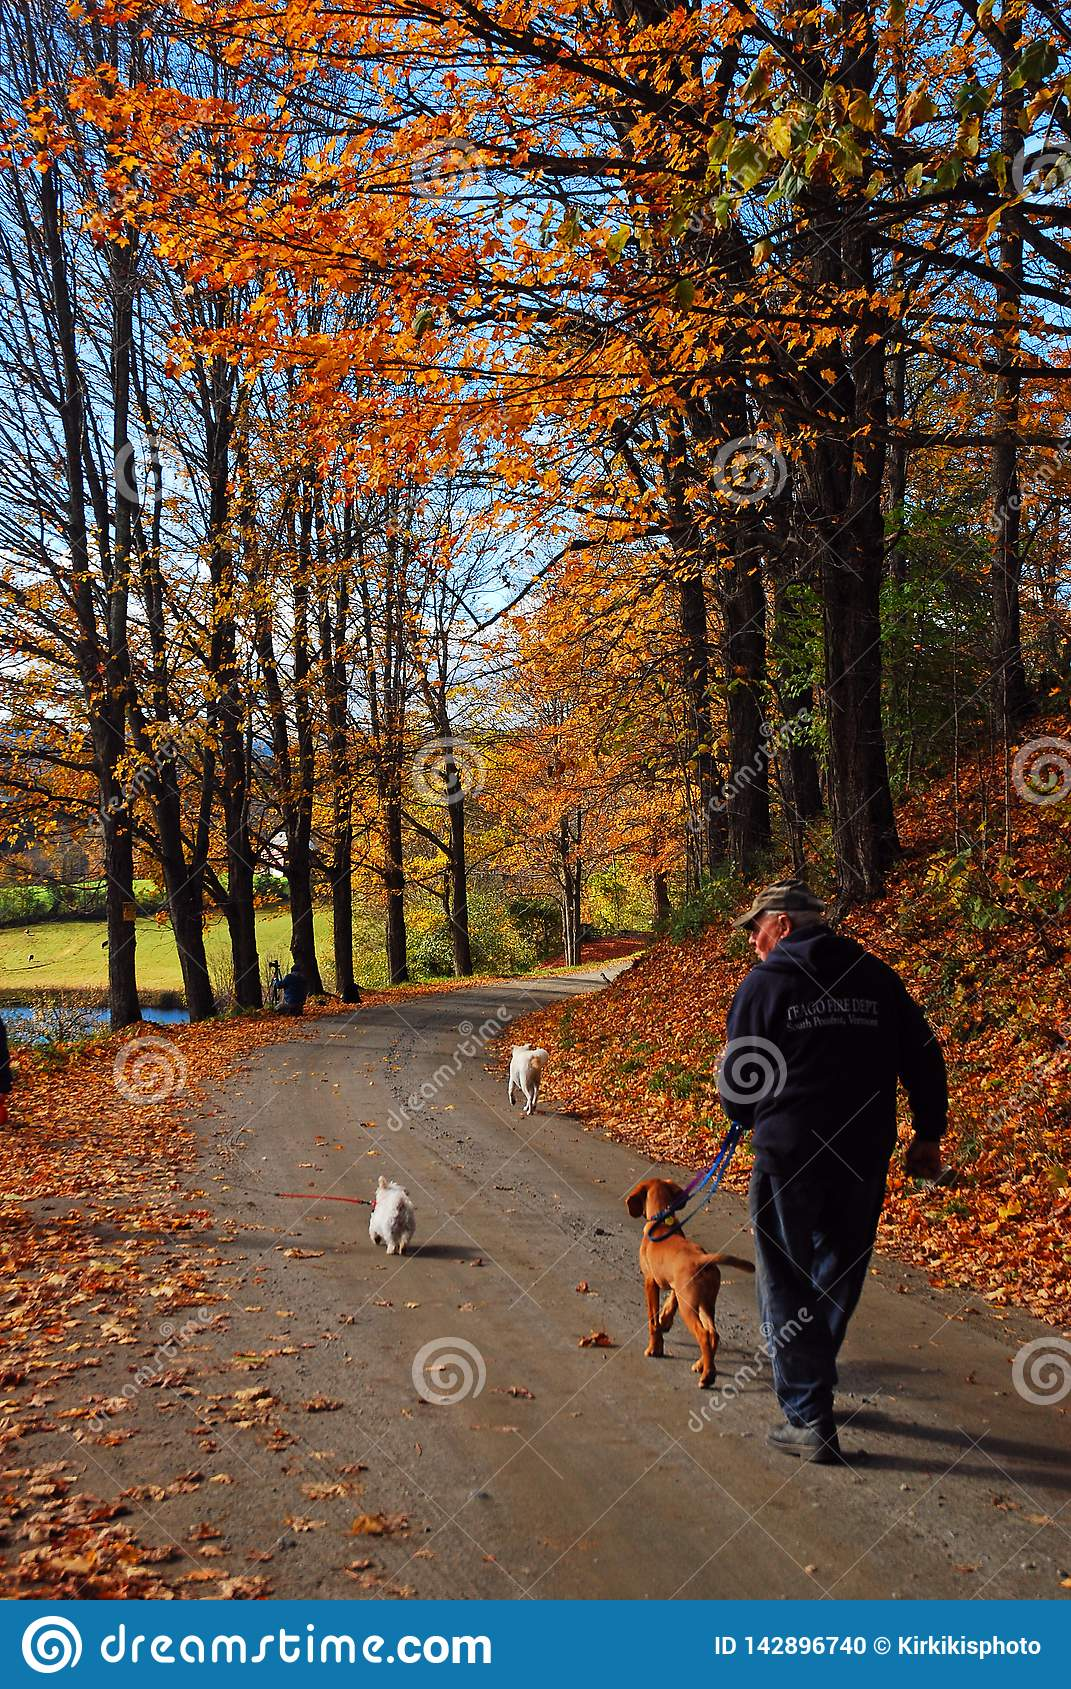 Walking the dog on an autumn day